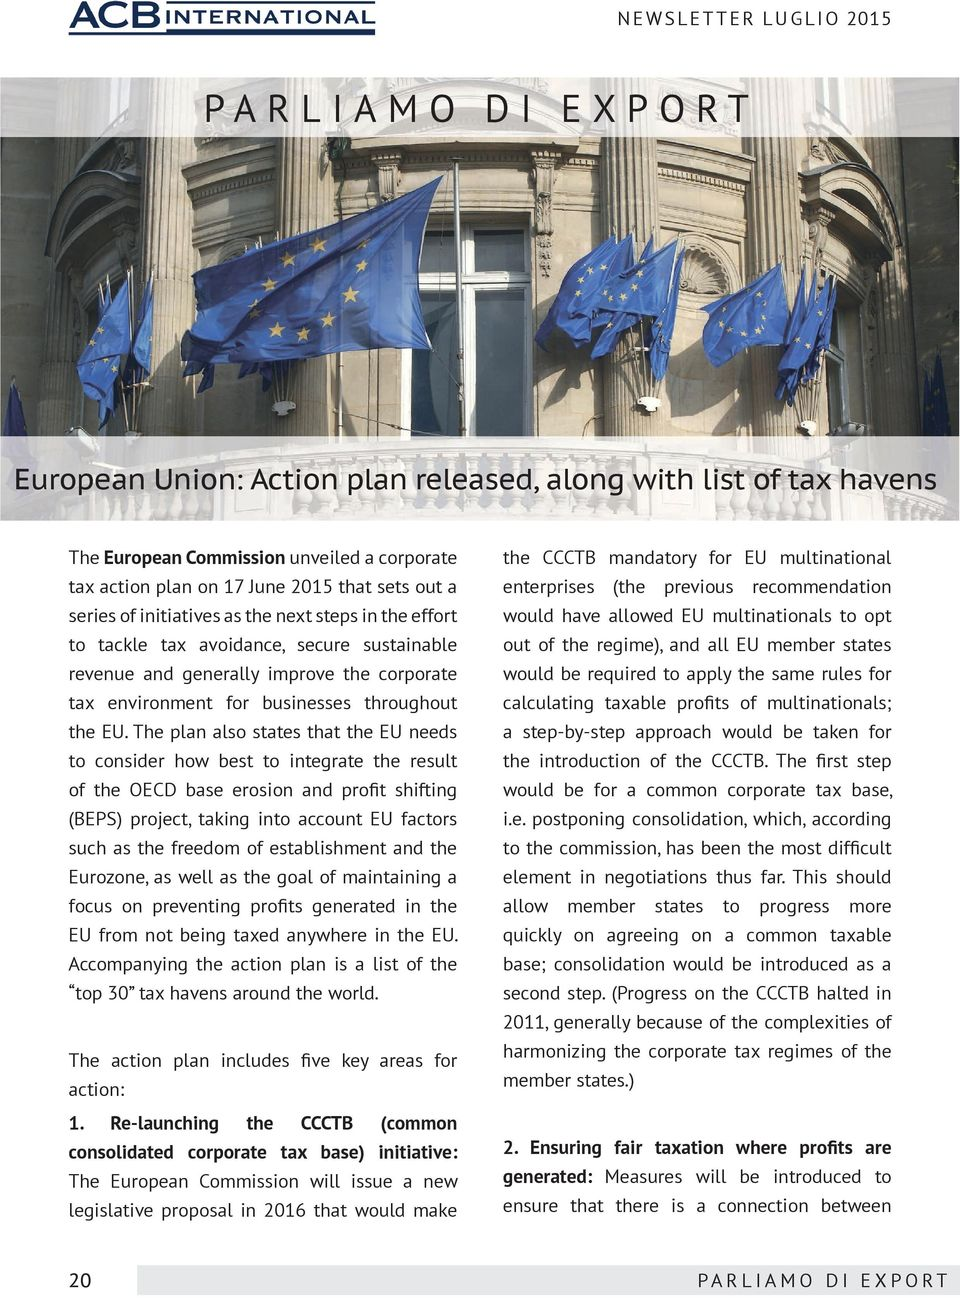 The plan also states that the EU needs to consider how best to integrate the result of the OECD base erosion and profit shifting (BEPS) project, taking into account EU factors such as the freedom of